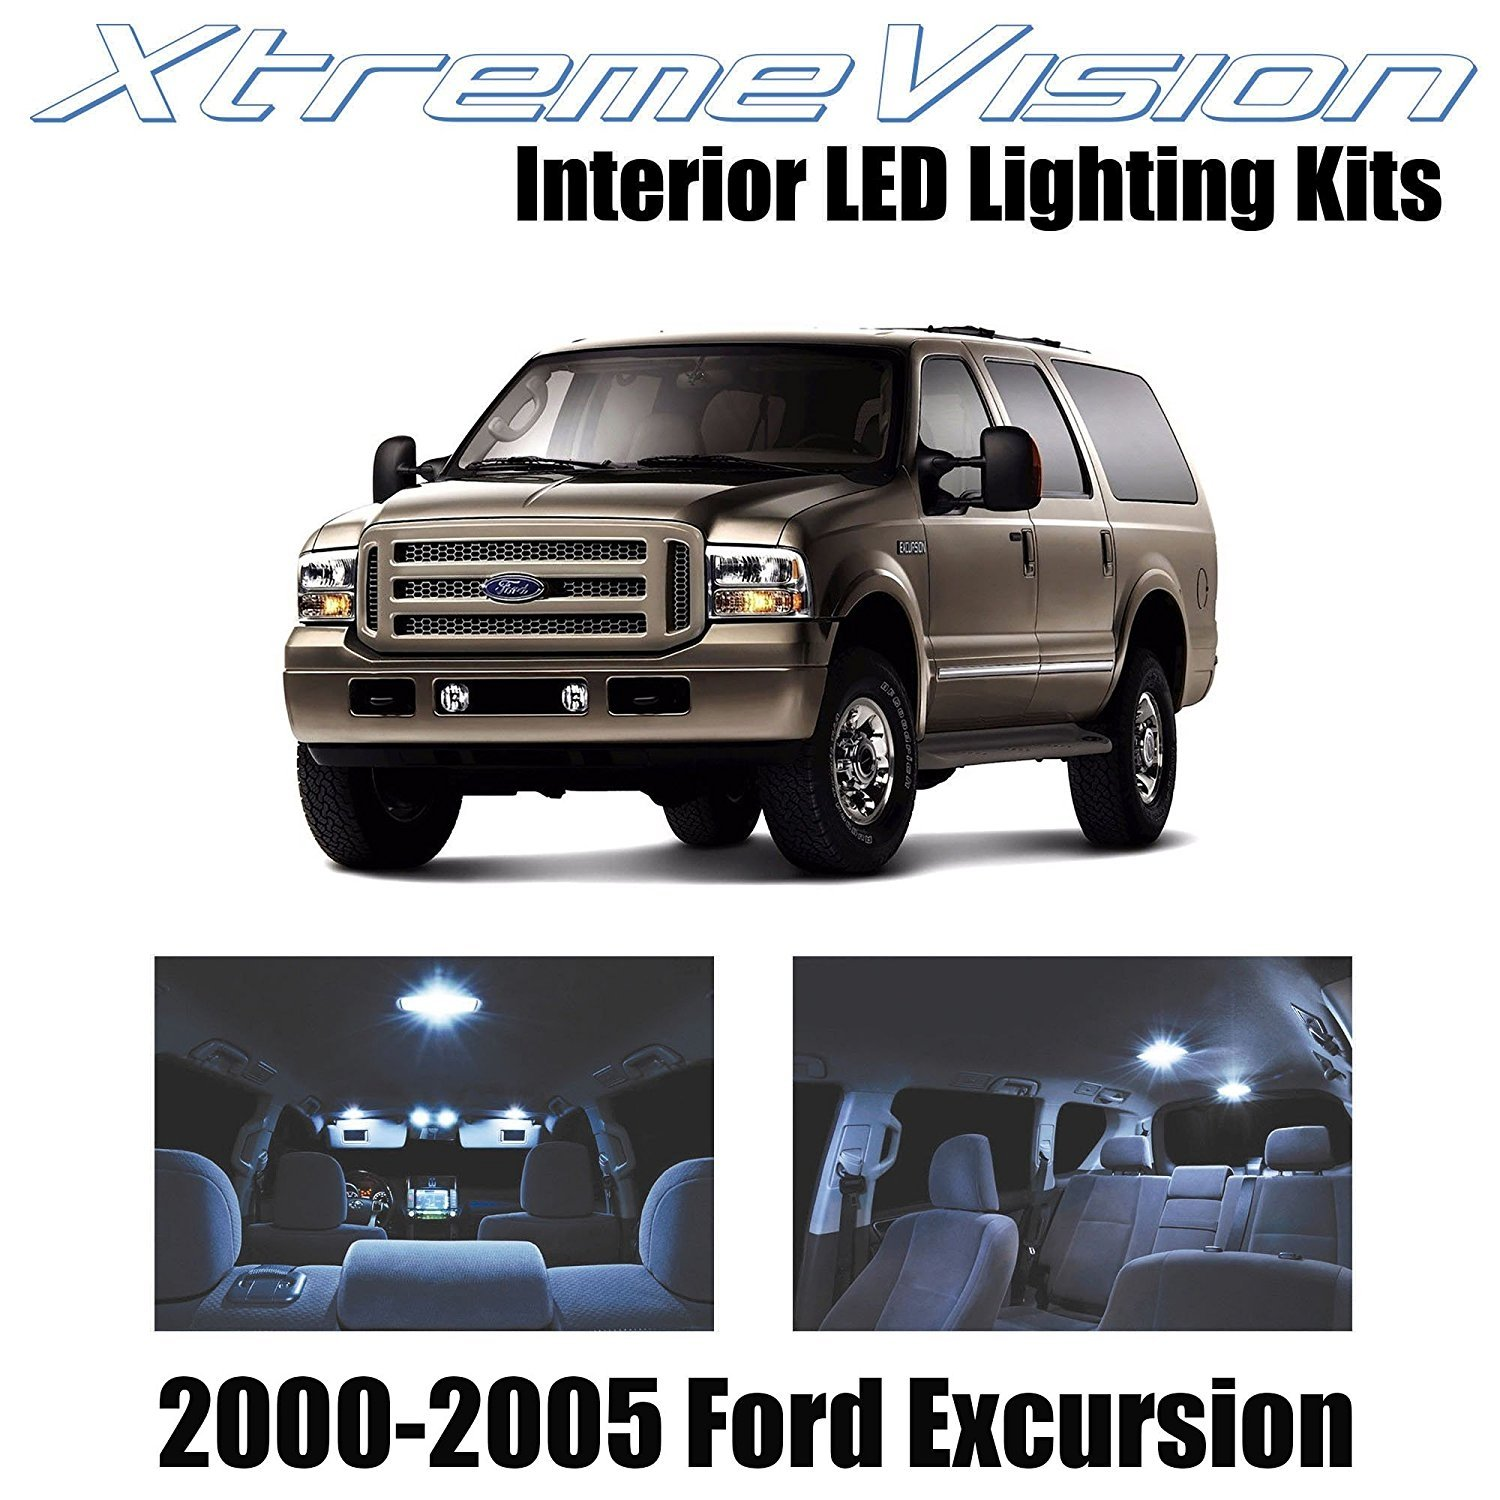 XtremeVision LED for Ford Excursion 2000-2005 (12 Pieces) Cool White Premium Interior LED Kit Package + Installation Tool